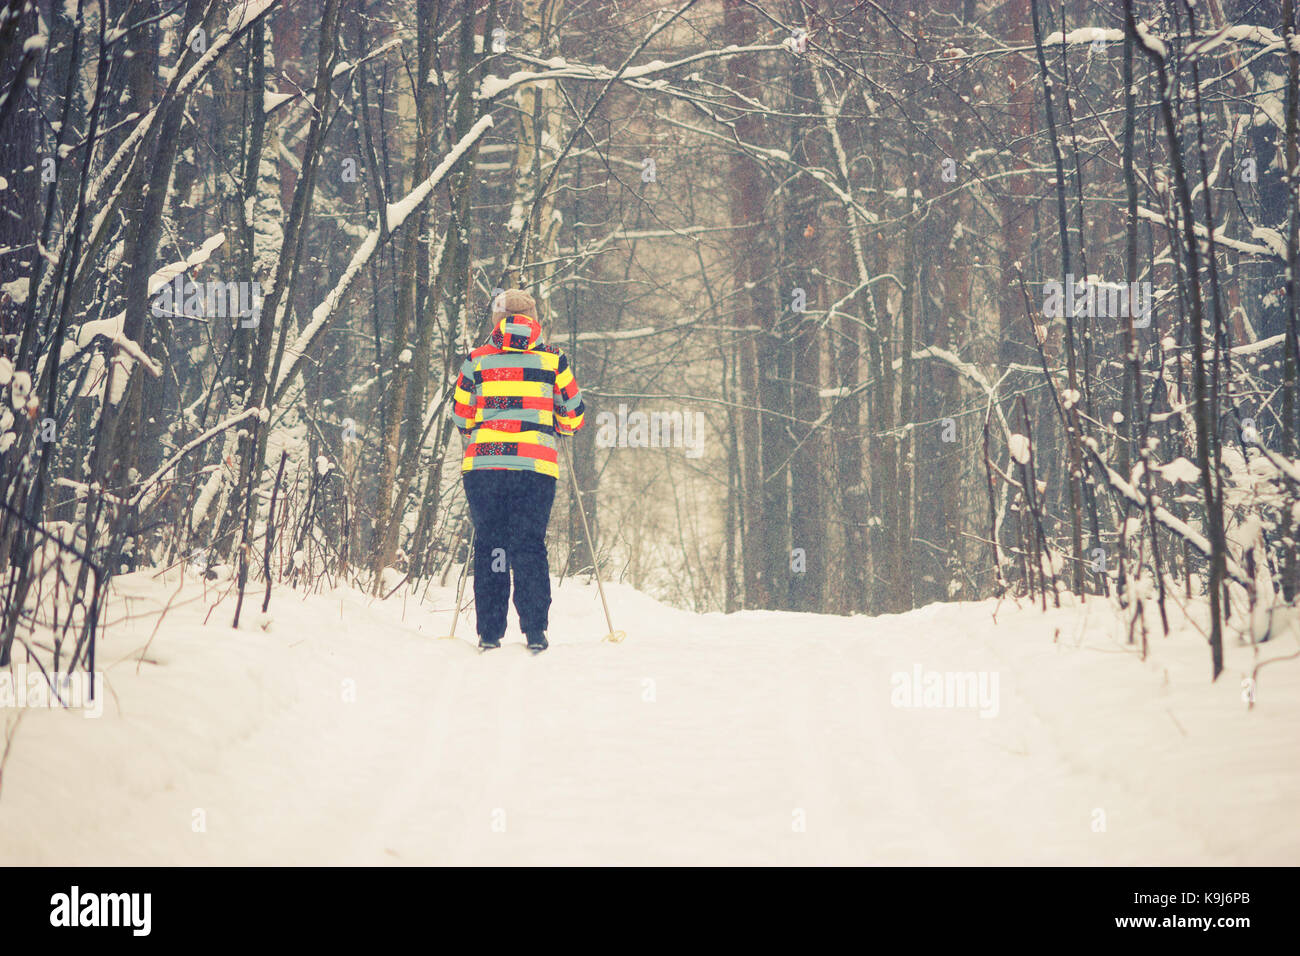 Skier moving very fast in forest. healthy lifestyle - Stock Image